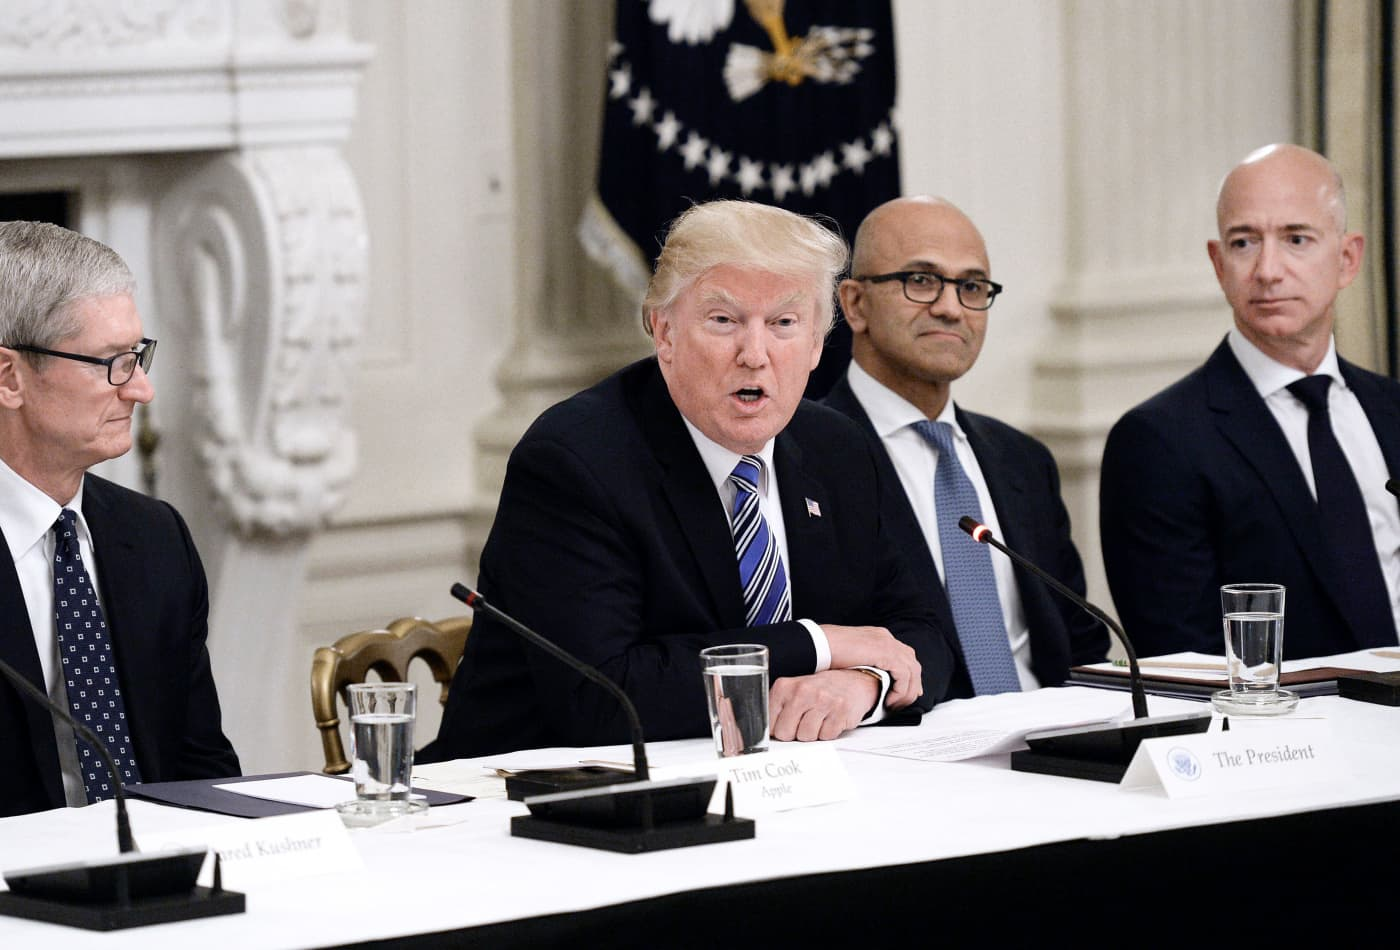 Amazon wants to depose Trump, accuses him of 'bias' after losing $10 billion Pentagon cloud contract